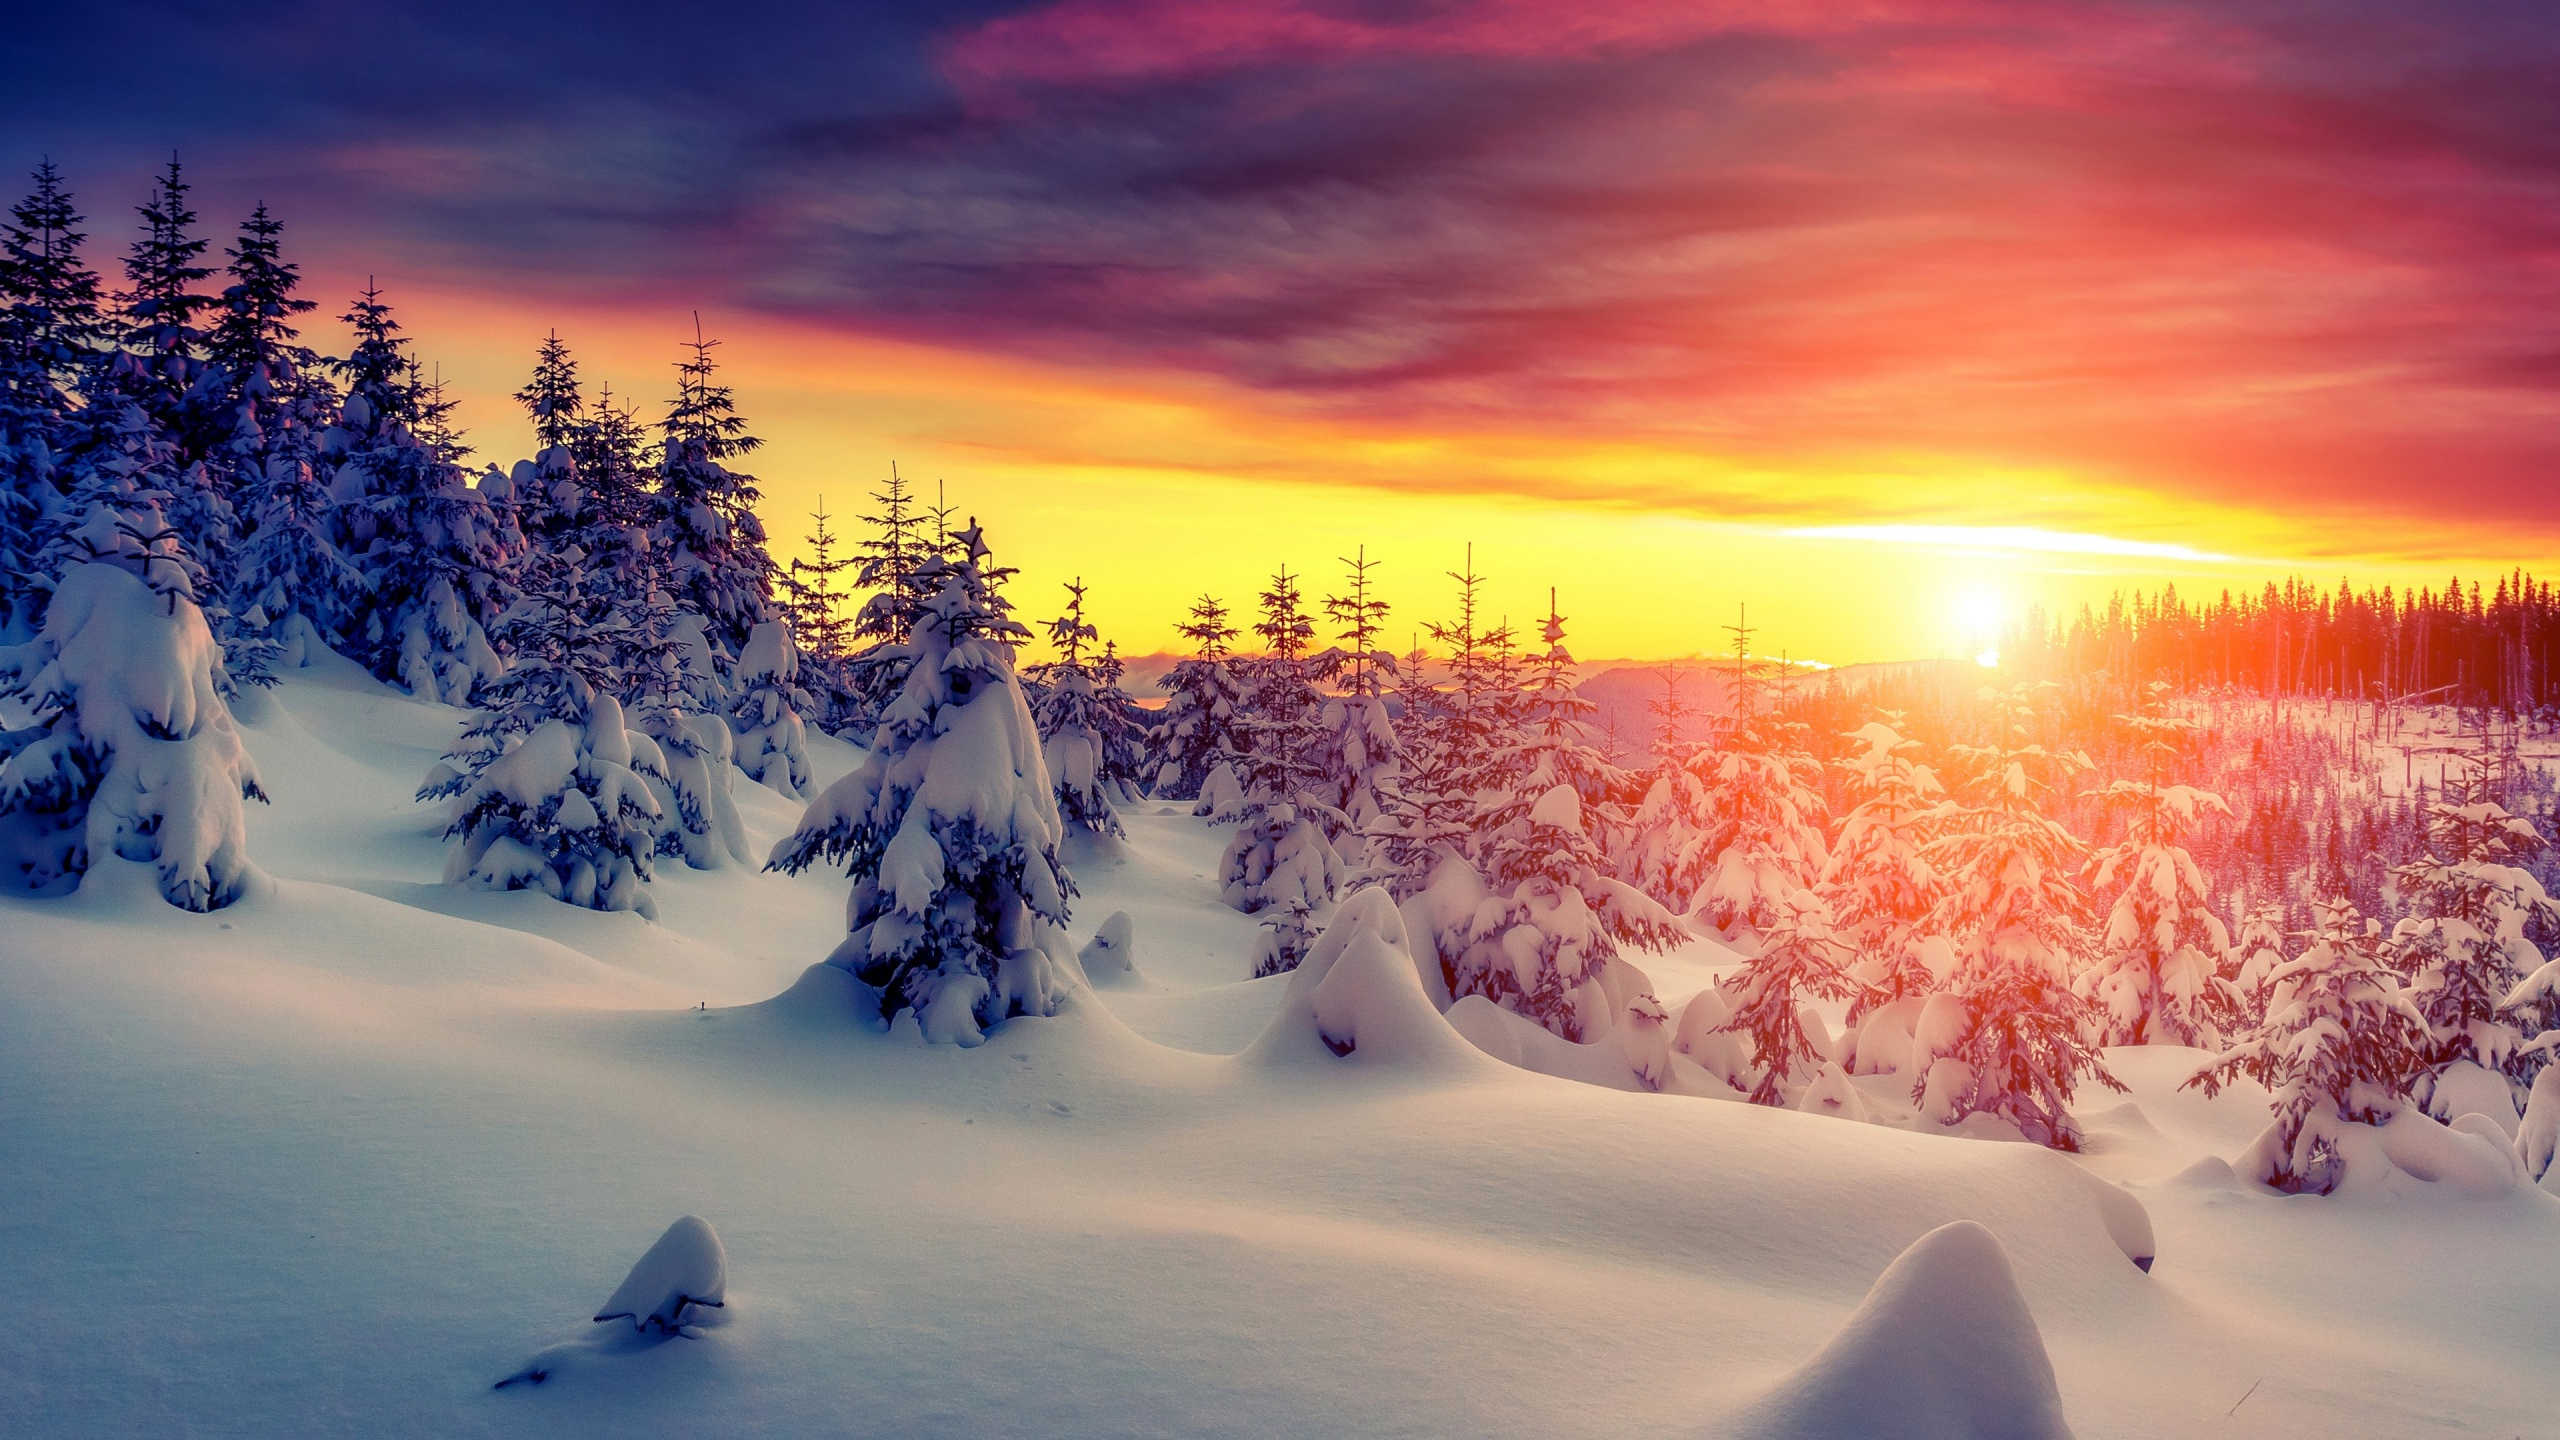 Winter Forest Sunset Sky Snow Wallpapers 2560x1440 1221907